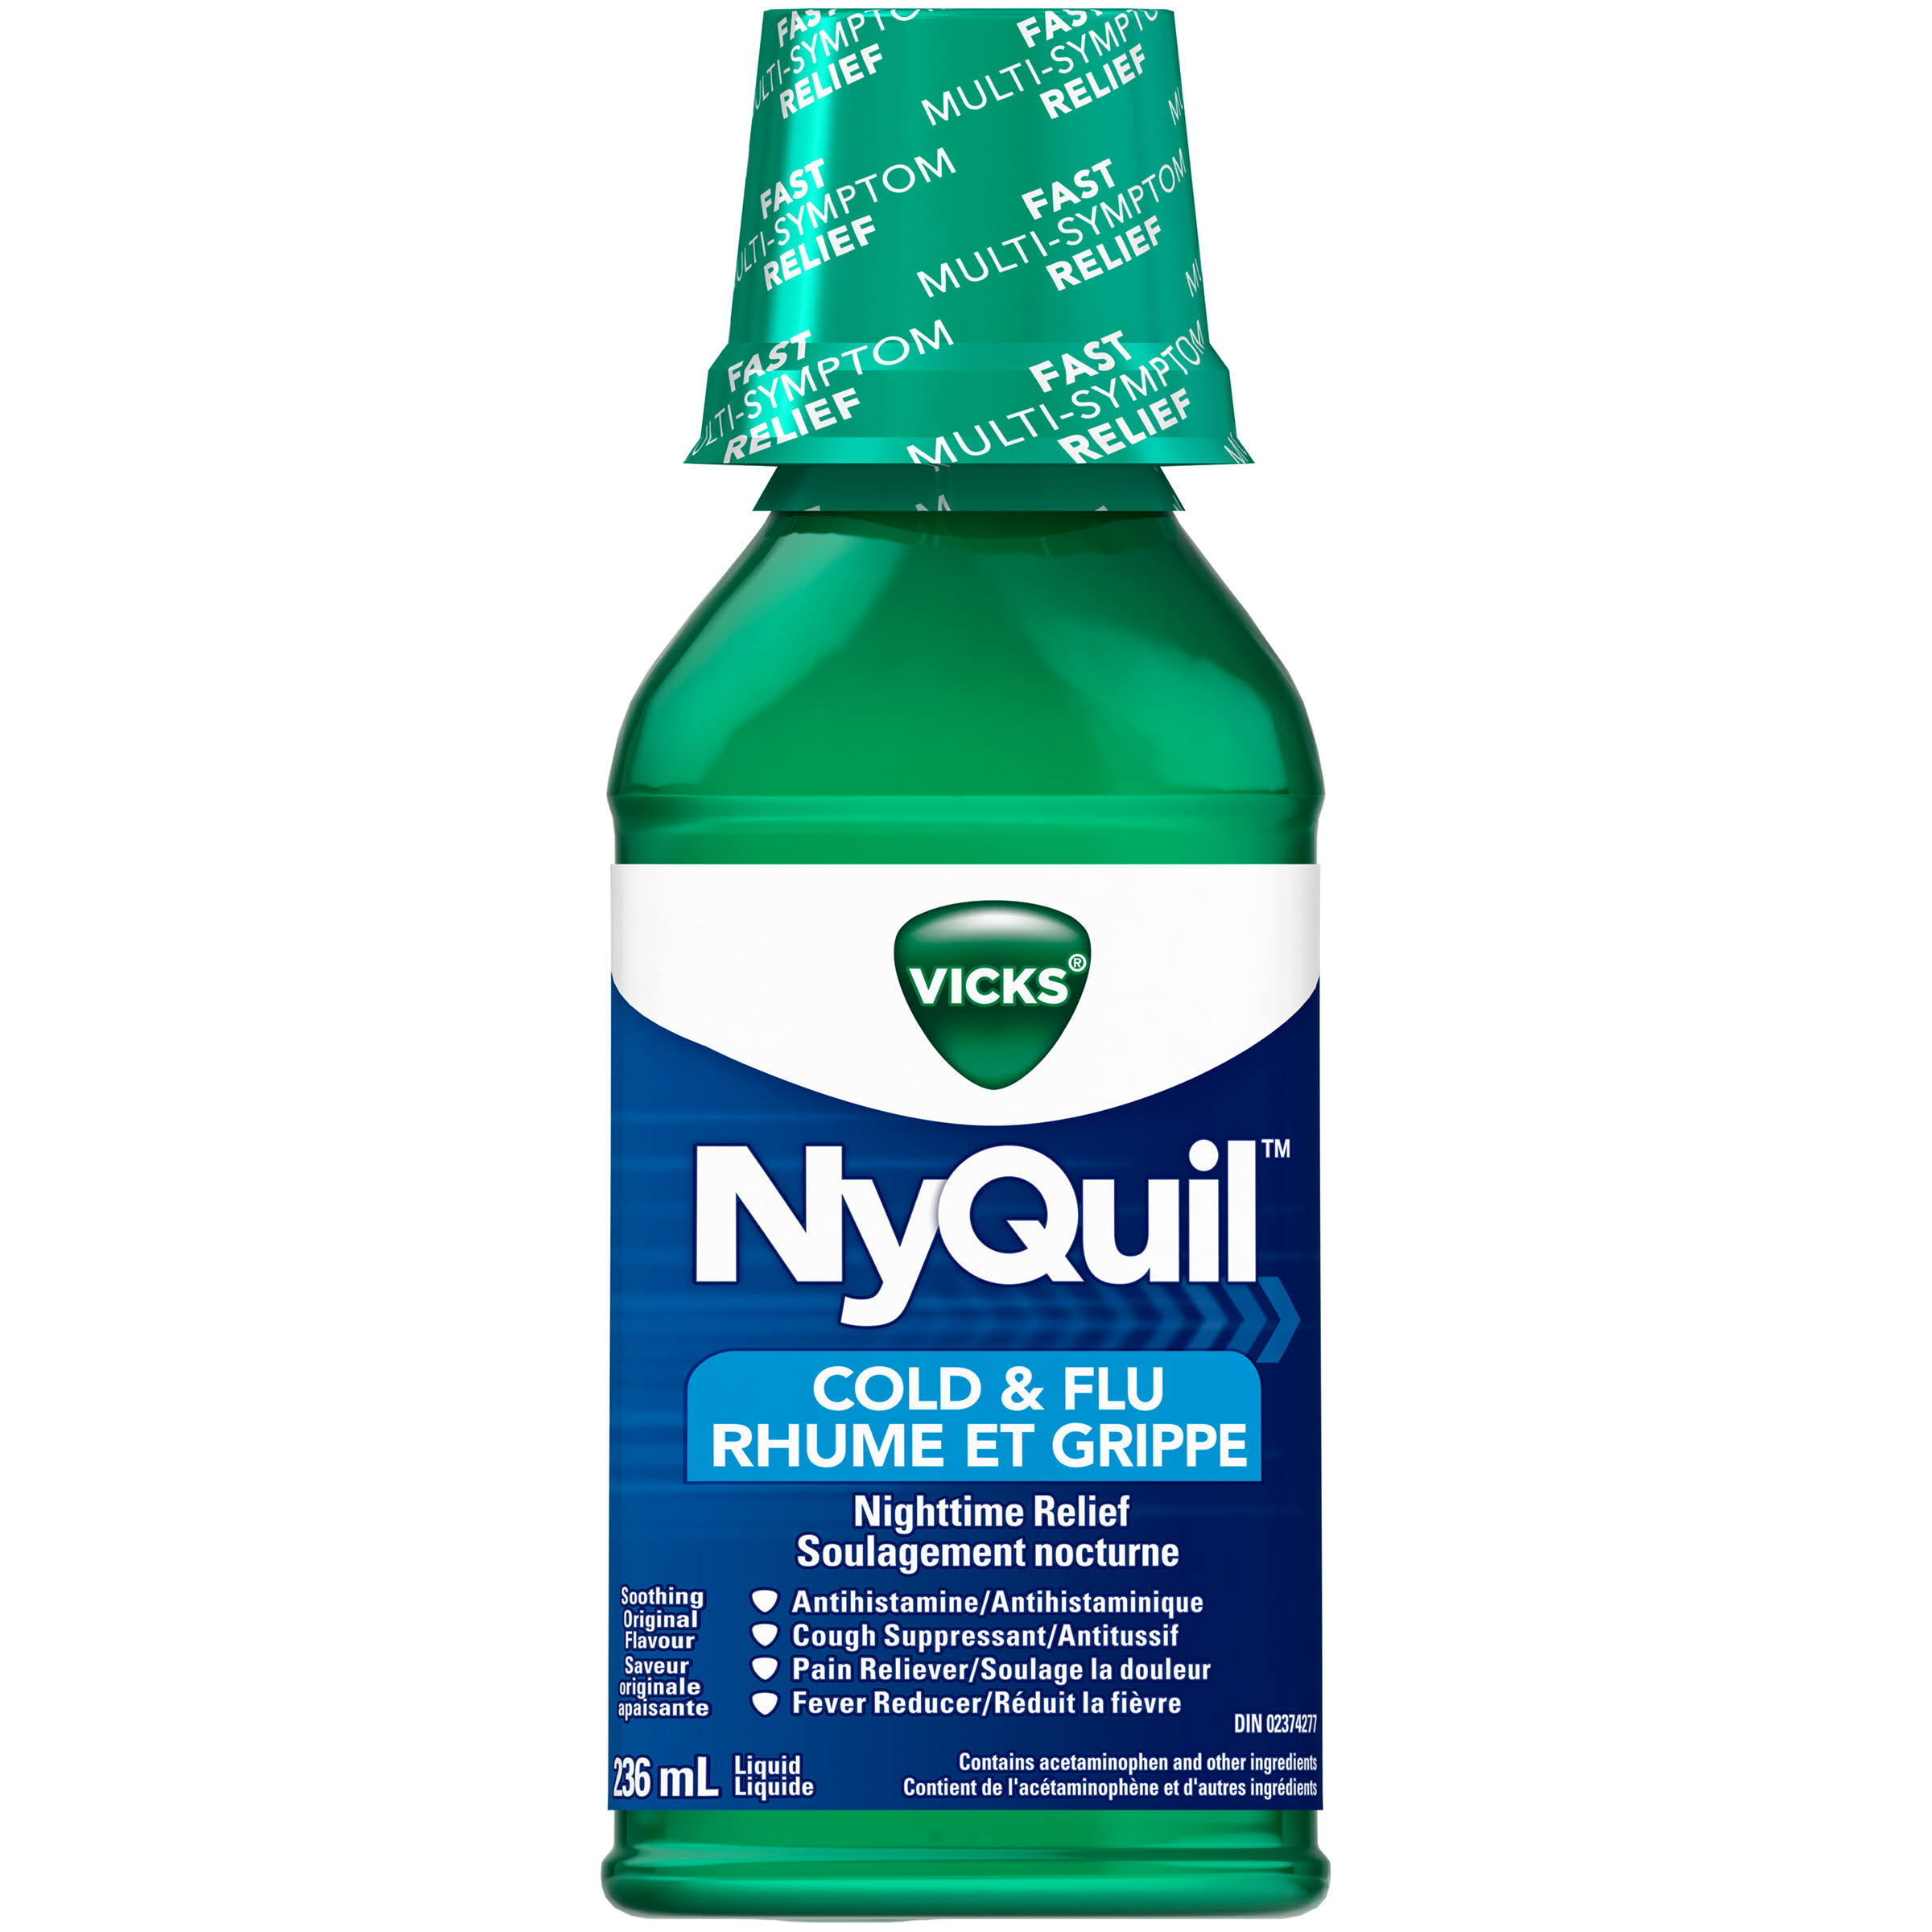 Nyquil Cold and Flu Nighttime Relief - 236ml, Original